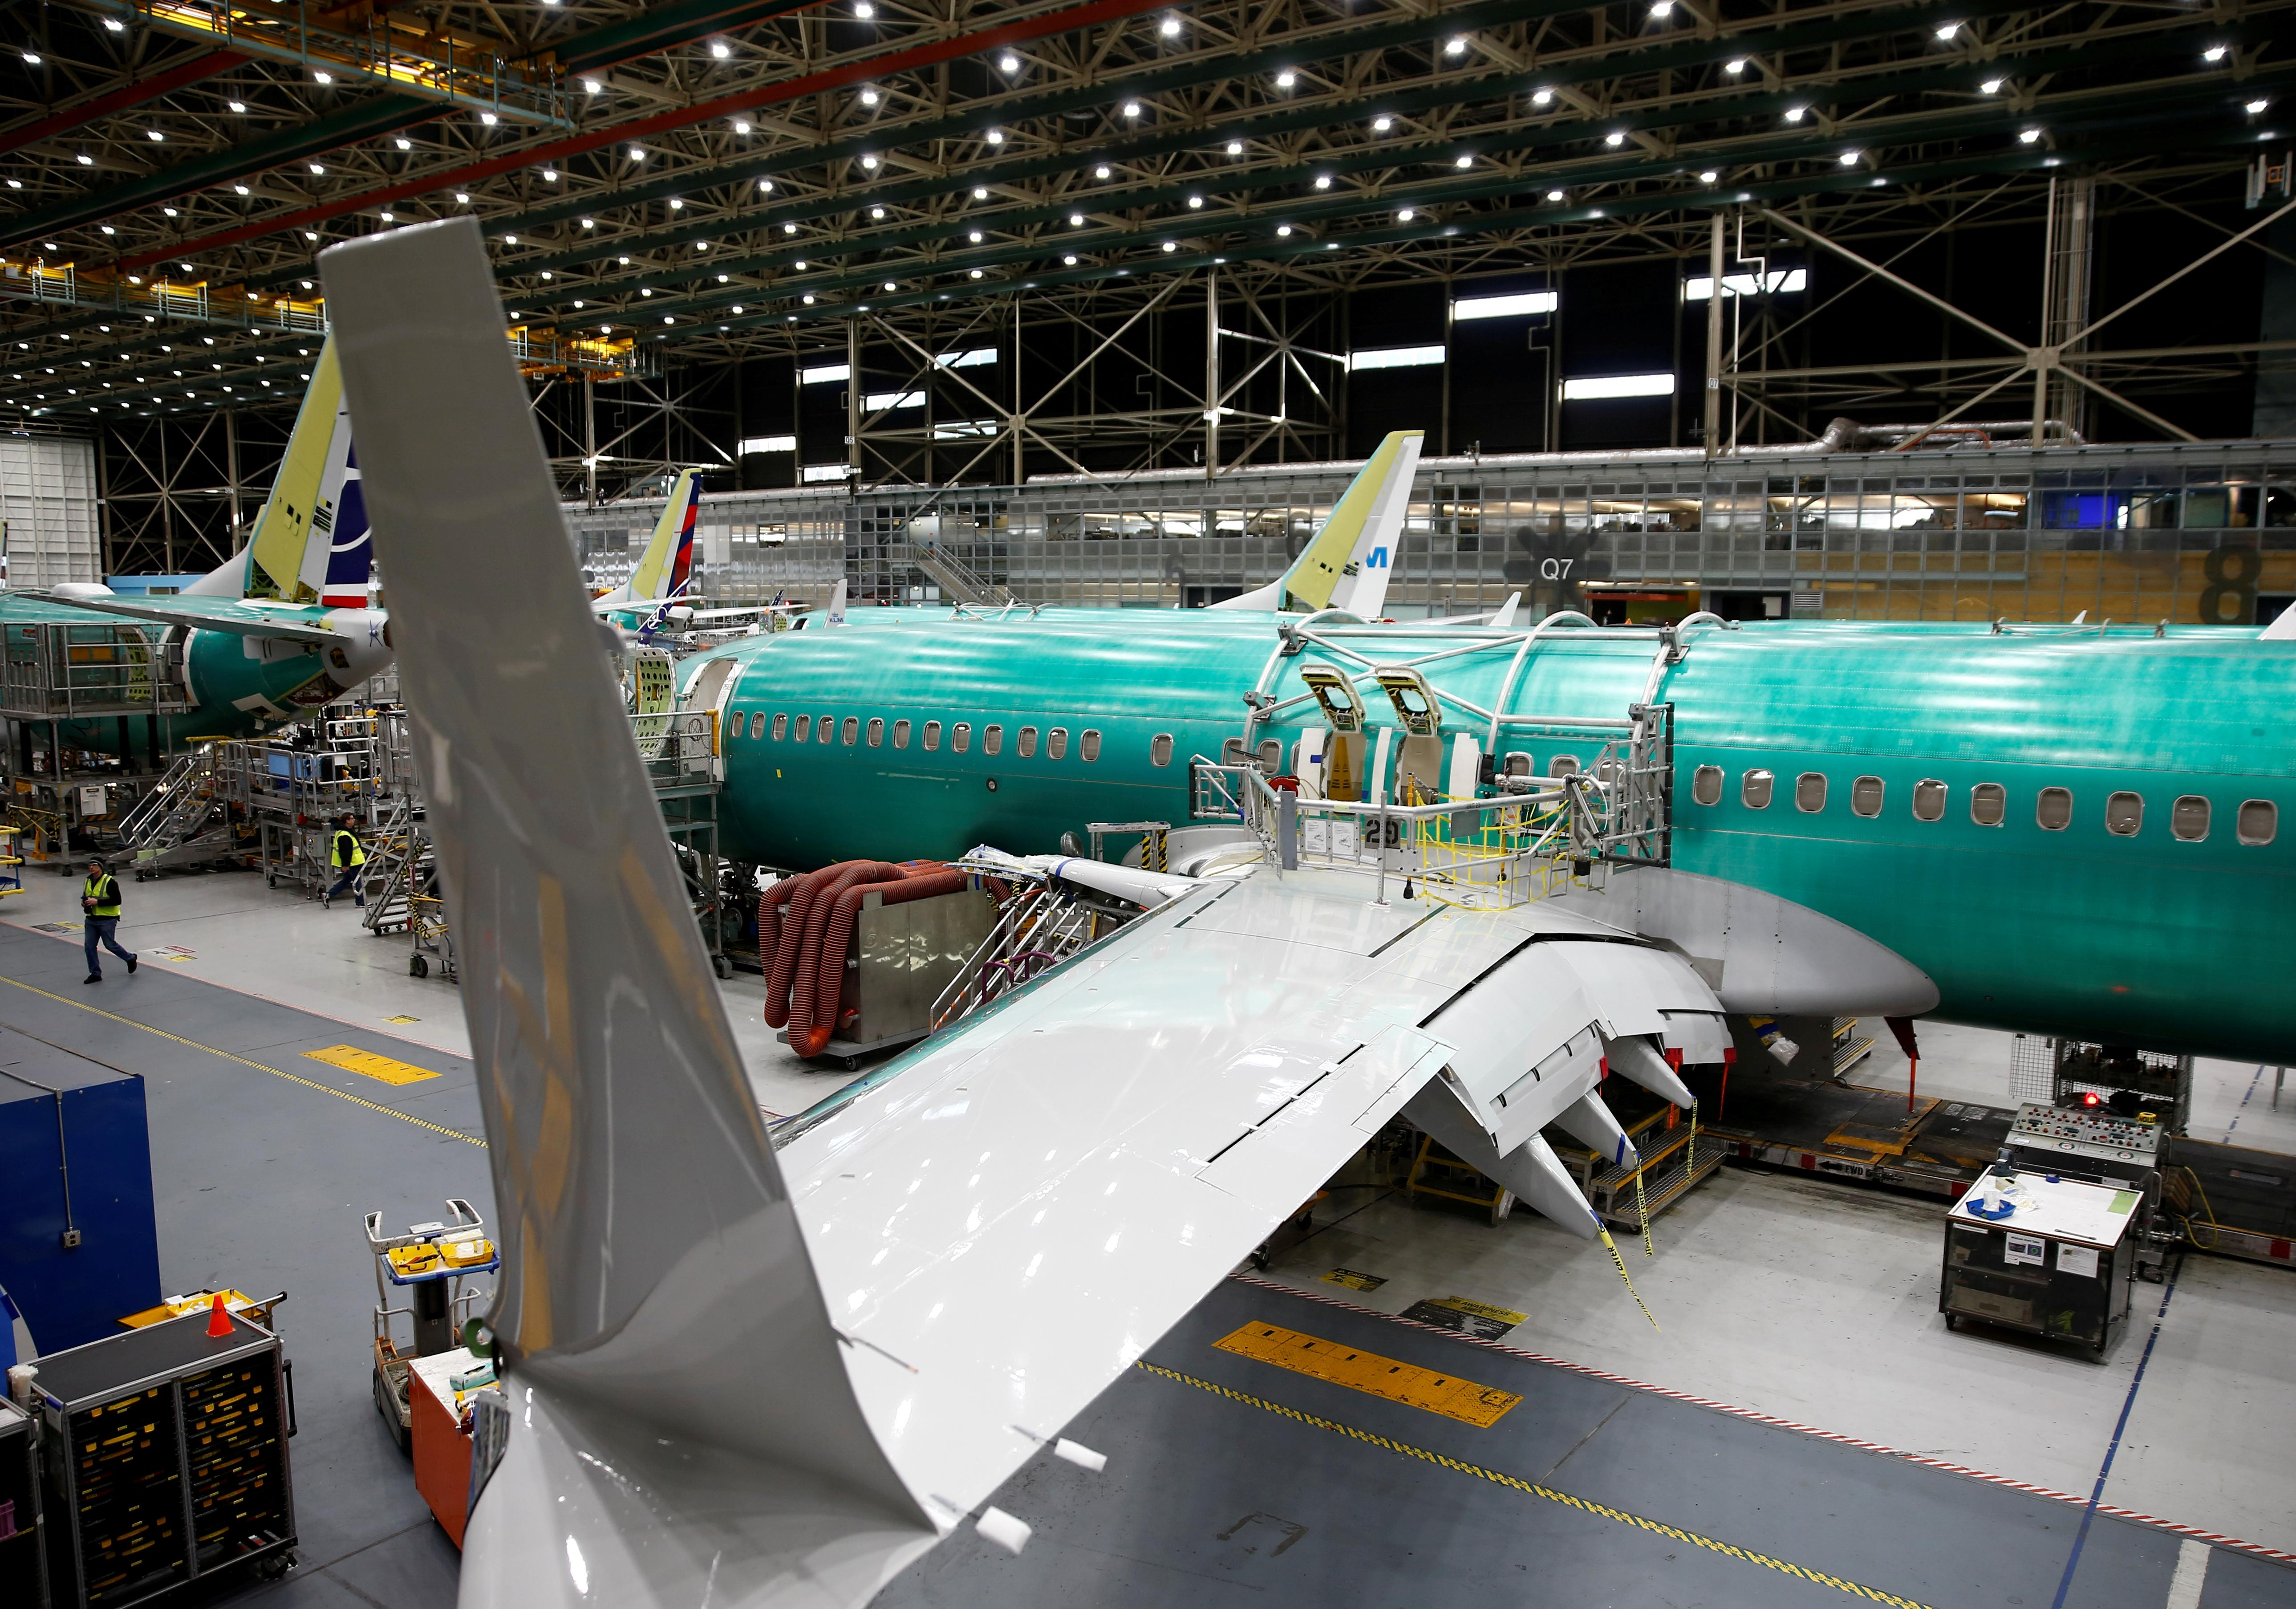 Boeing 737 MAX may not return to service until August: IATA head